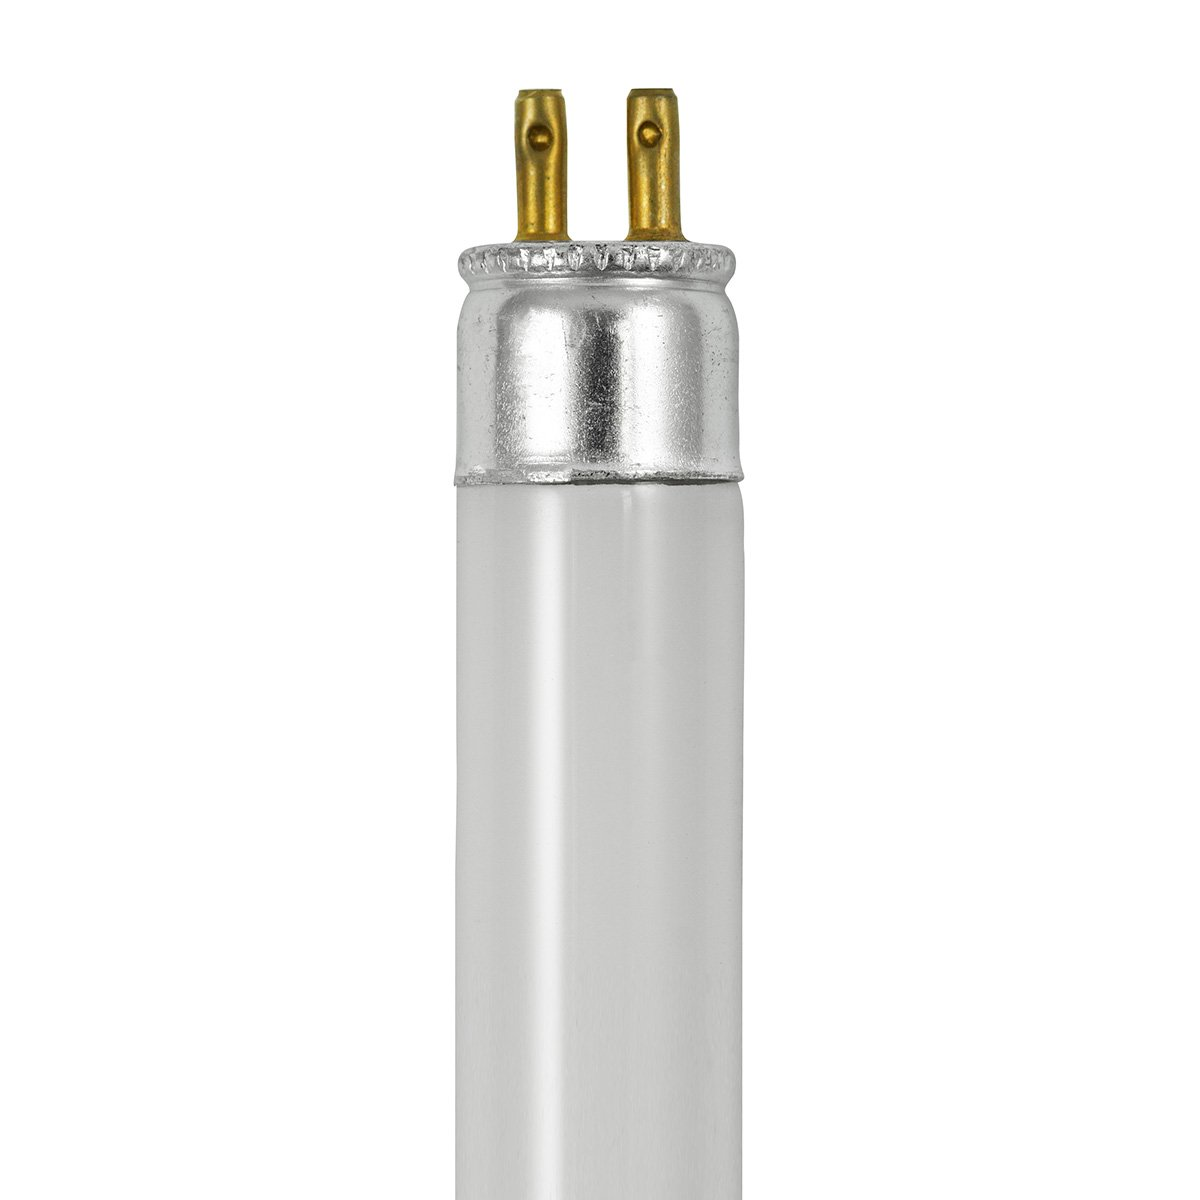 F6T4 CW 8.6 in. Cool White Watts 6W Type T4 Fluorescent Tube Color